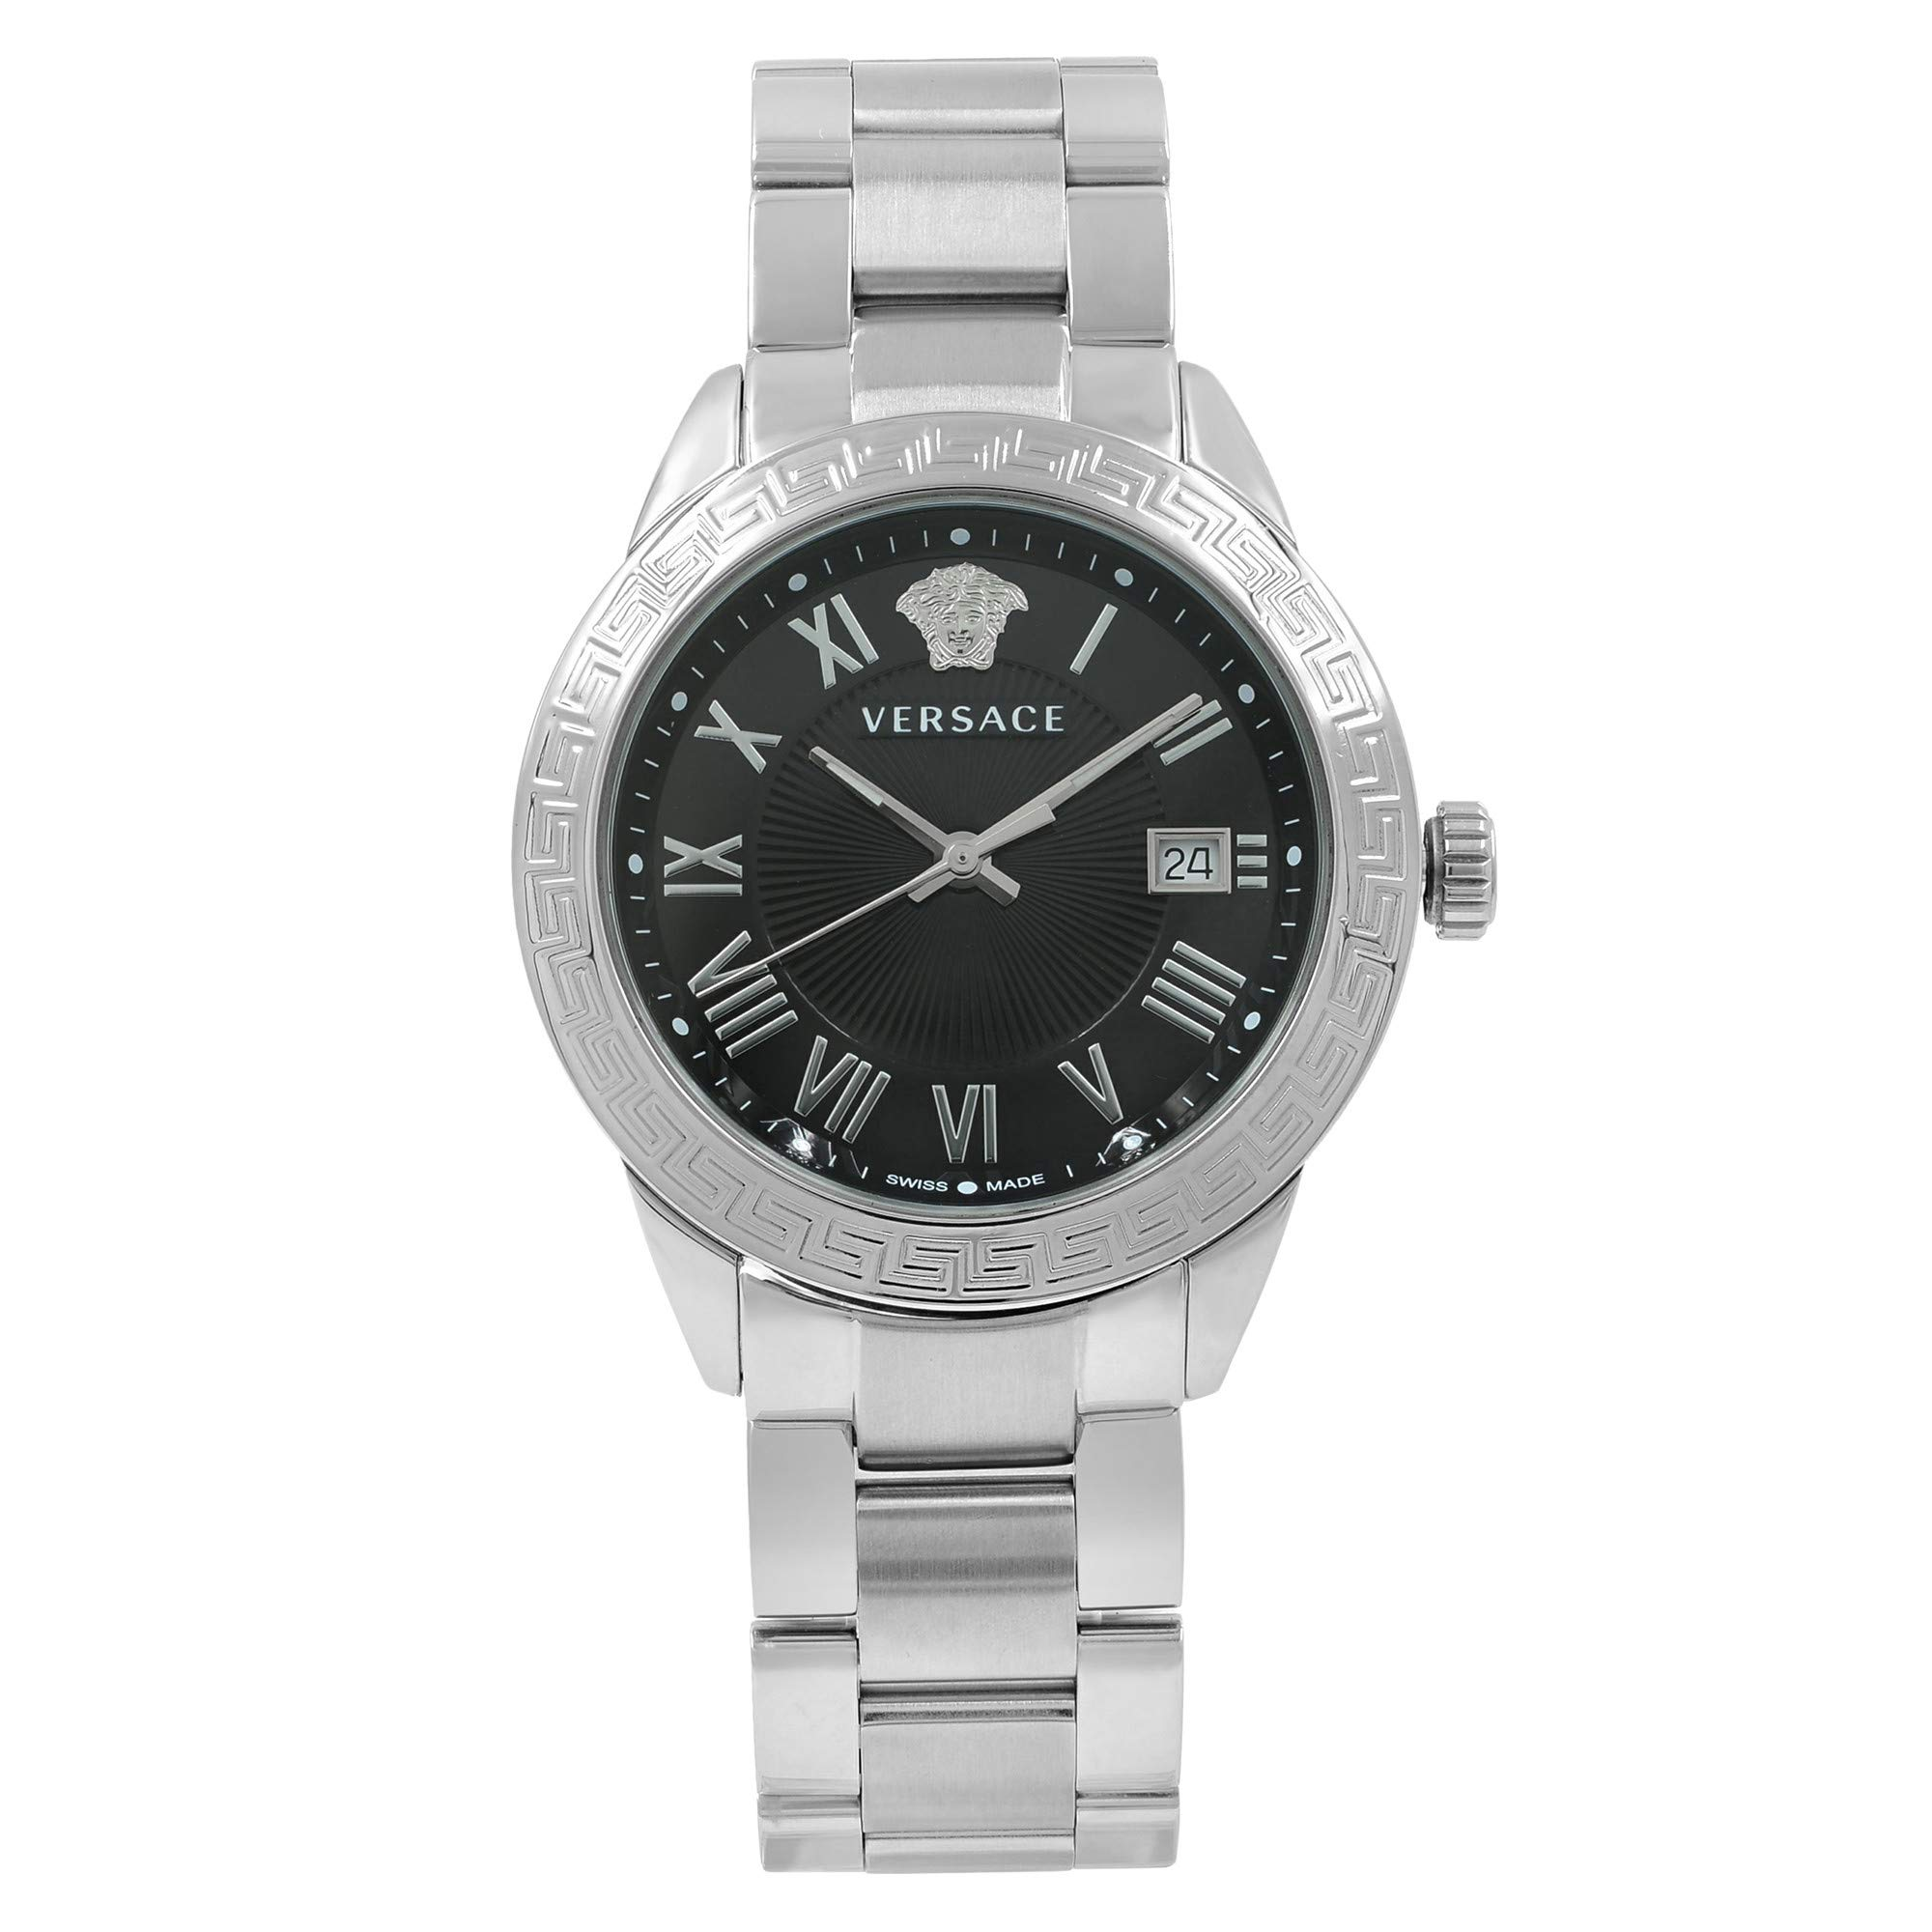 Versace Landmark Quartz Male Watch P6Q99GD008S099 (Certified Pre-Owned) by Versace (Image #1)